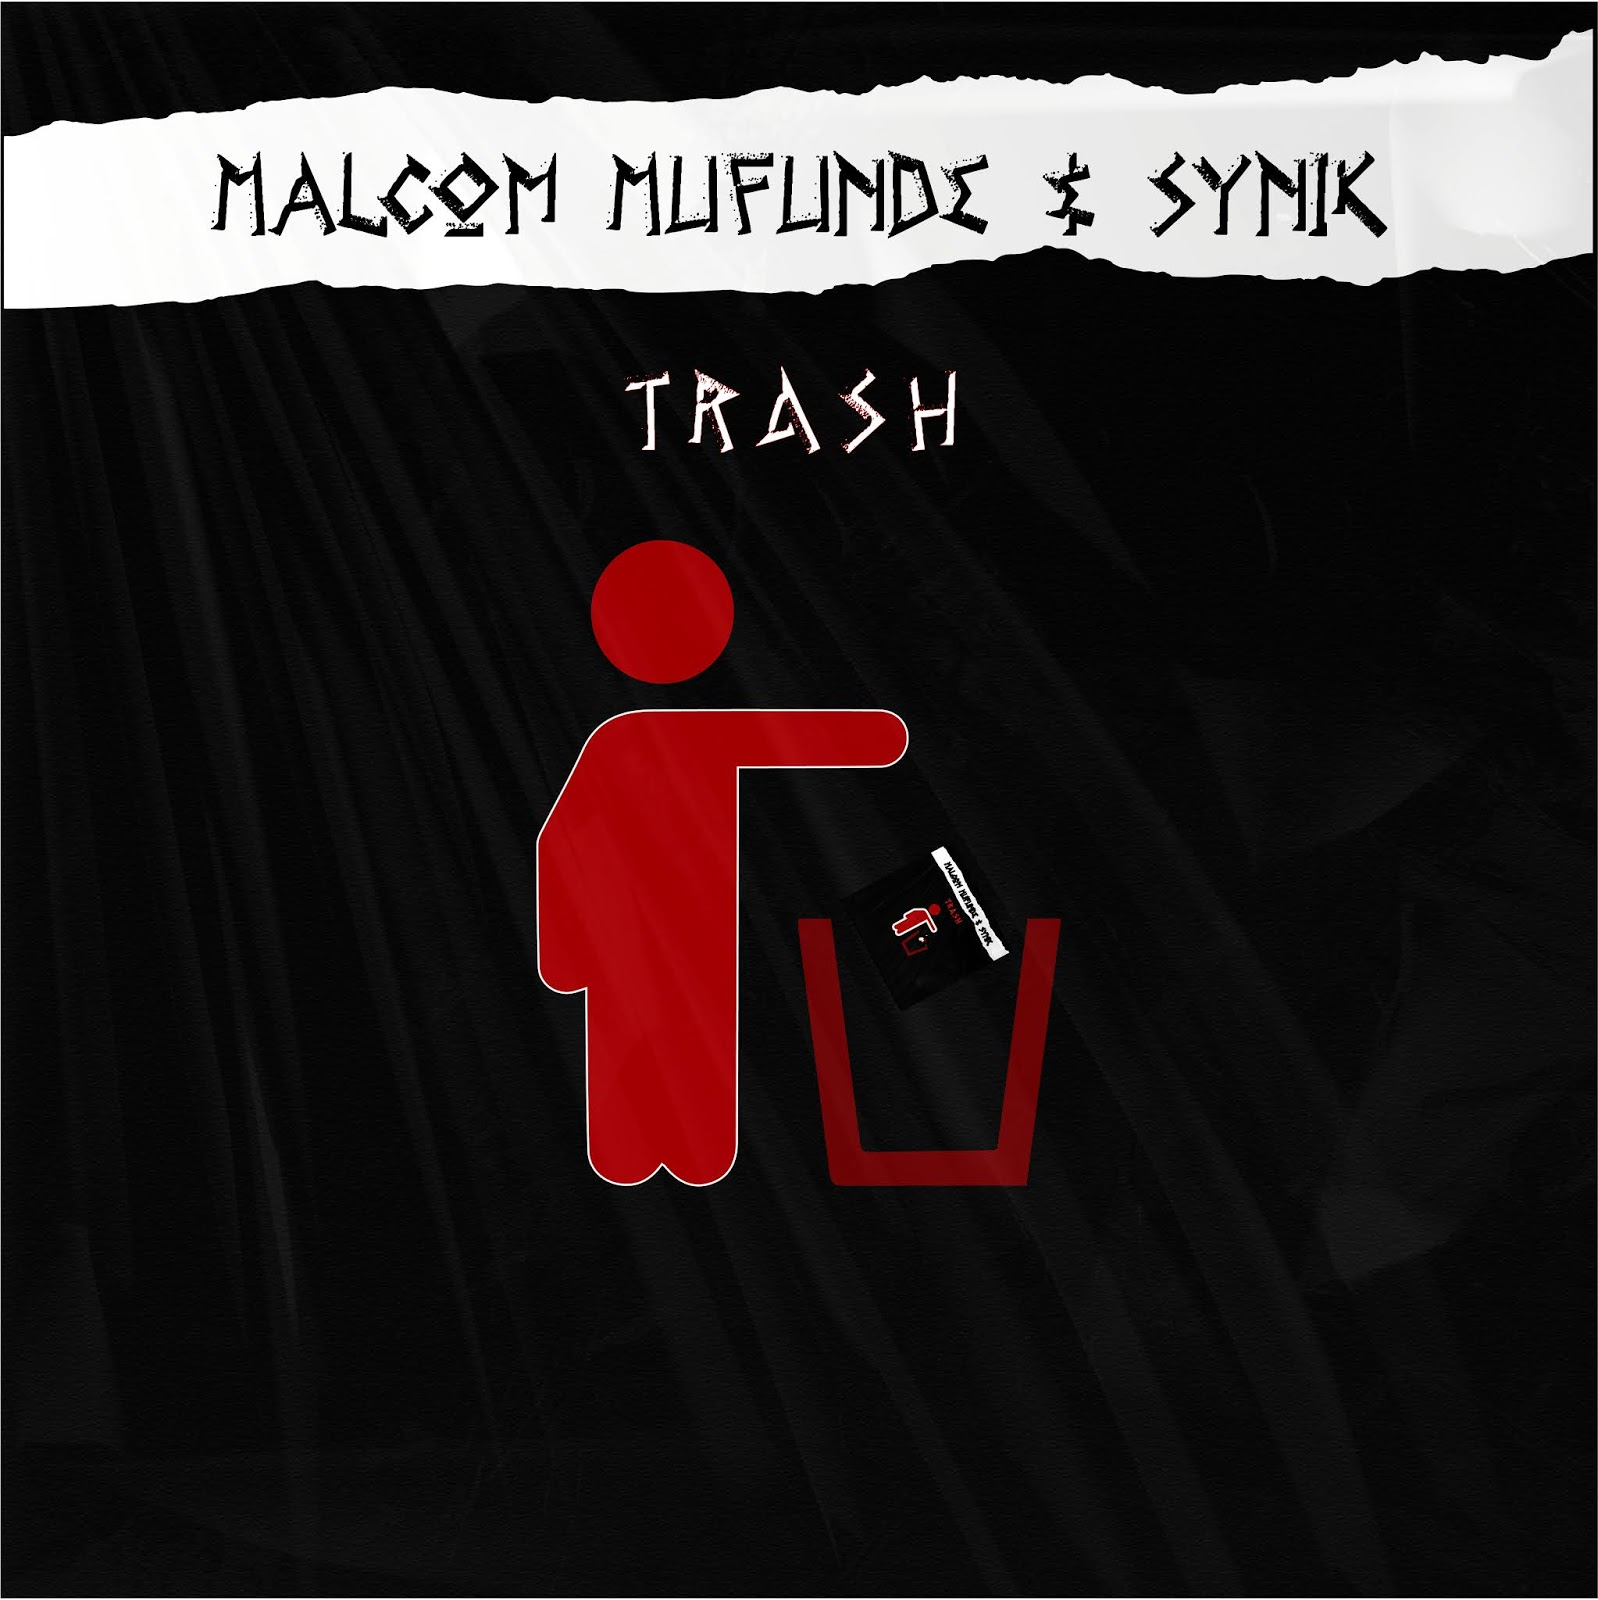 Malcom Mufunde on working with Synik on Trash